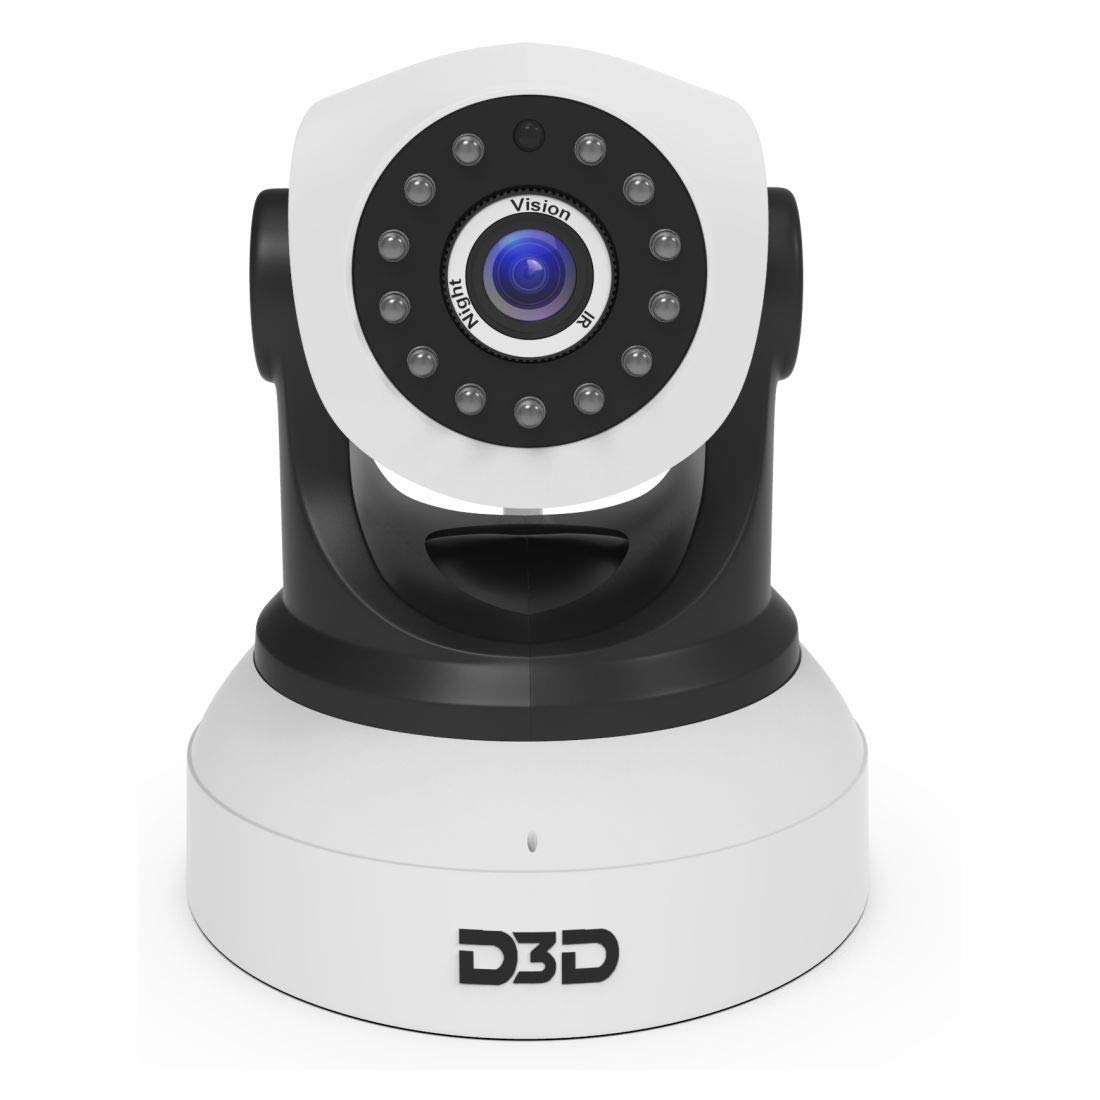 D3D D8809 HD 720P WiFi Home Security Camera Night Vision 360 PTZ (Black  White)